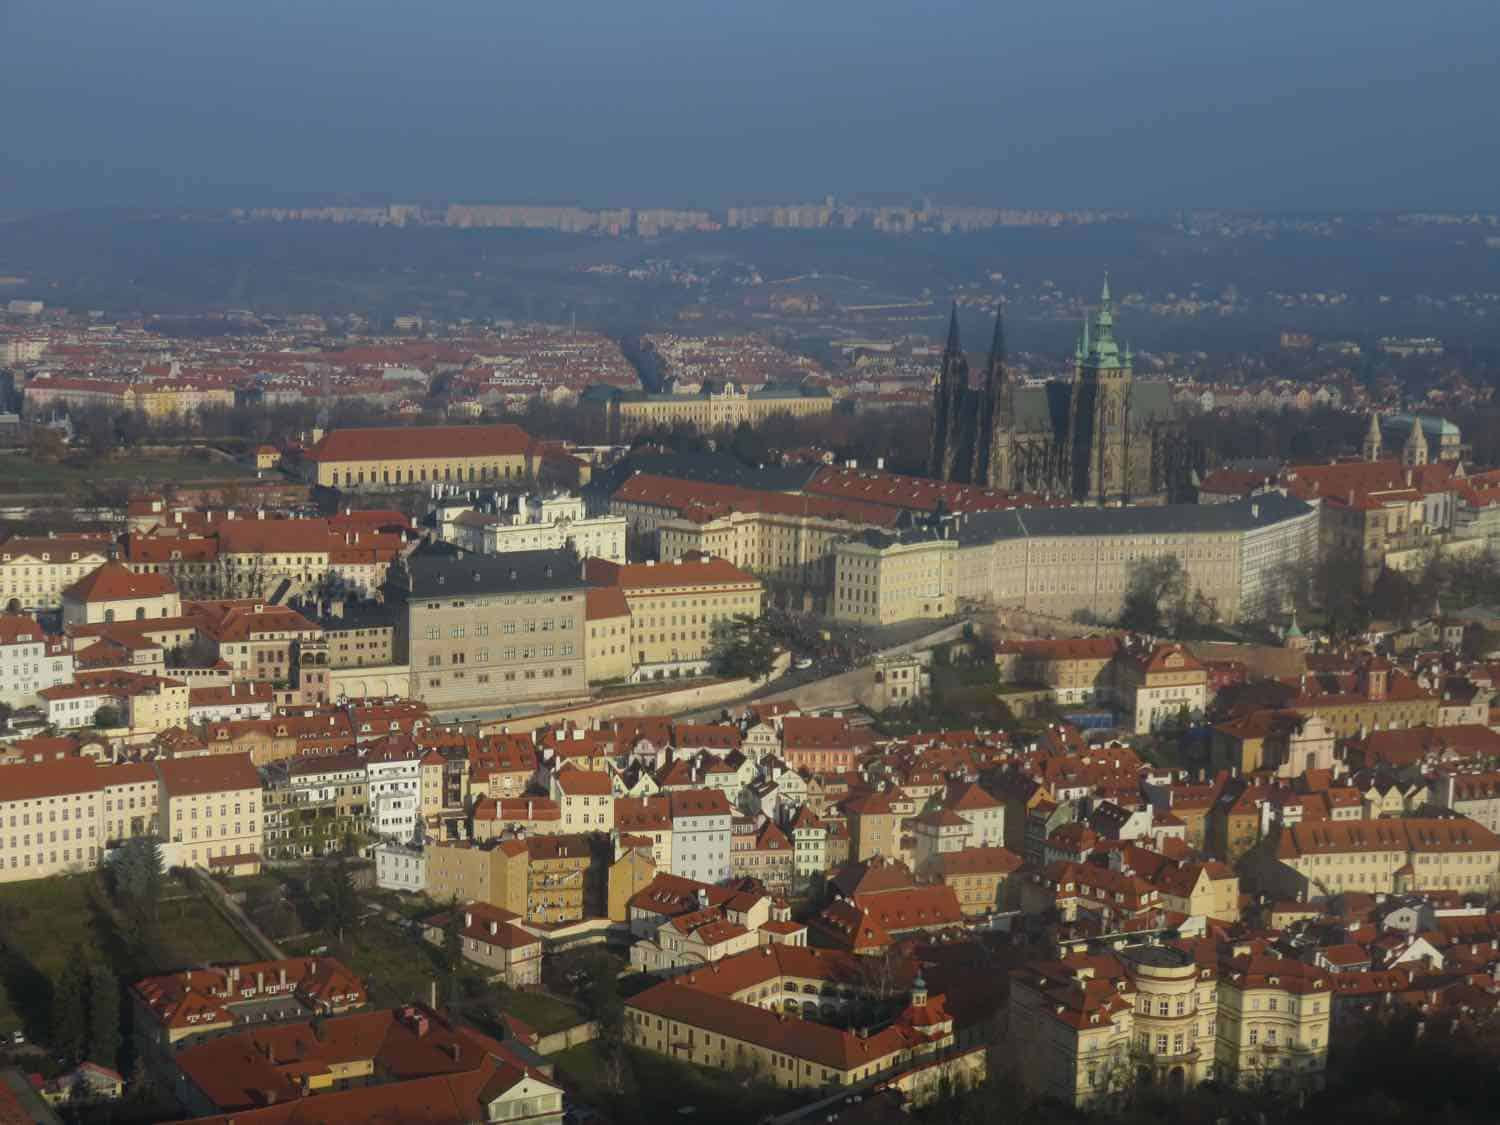 View of red rooftops in Prague